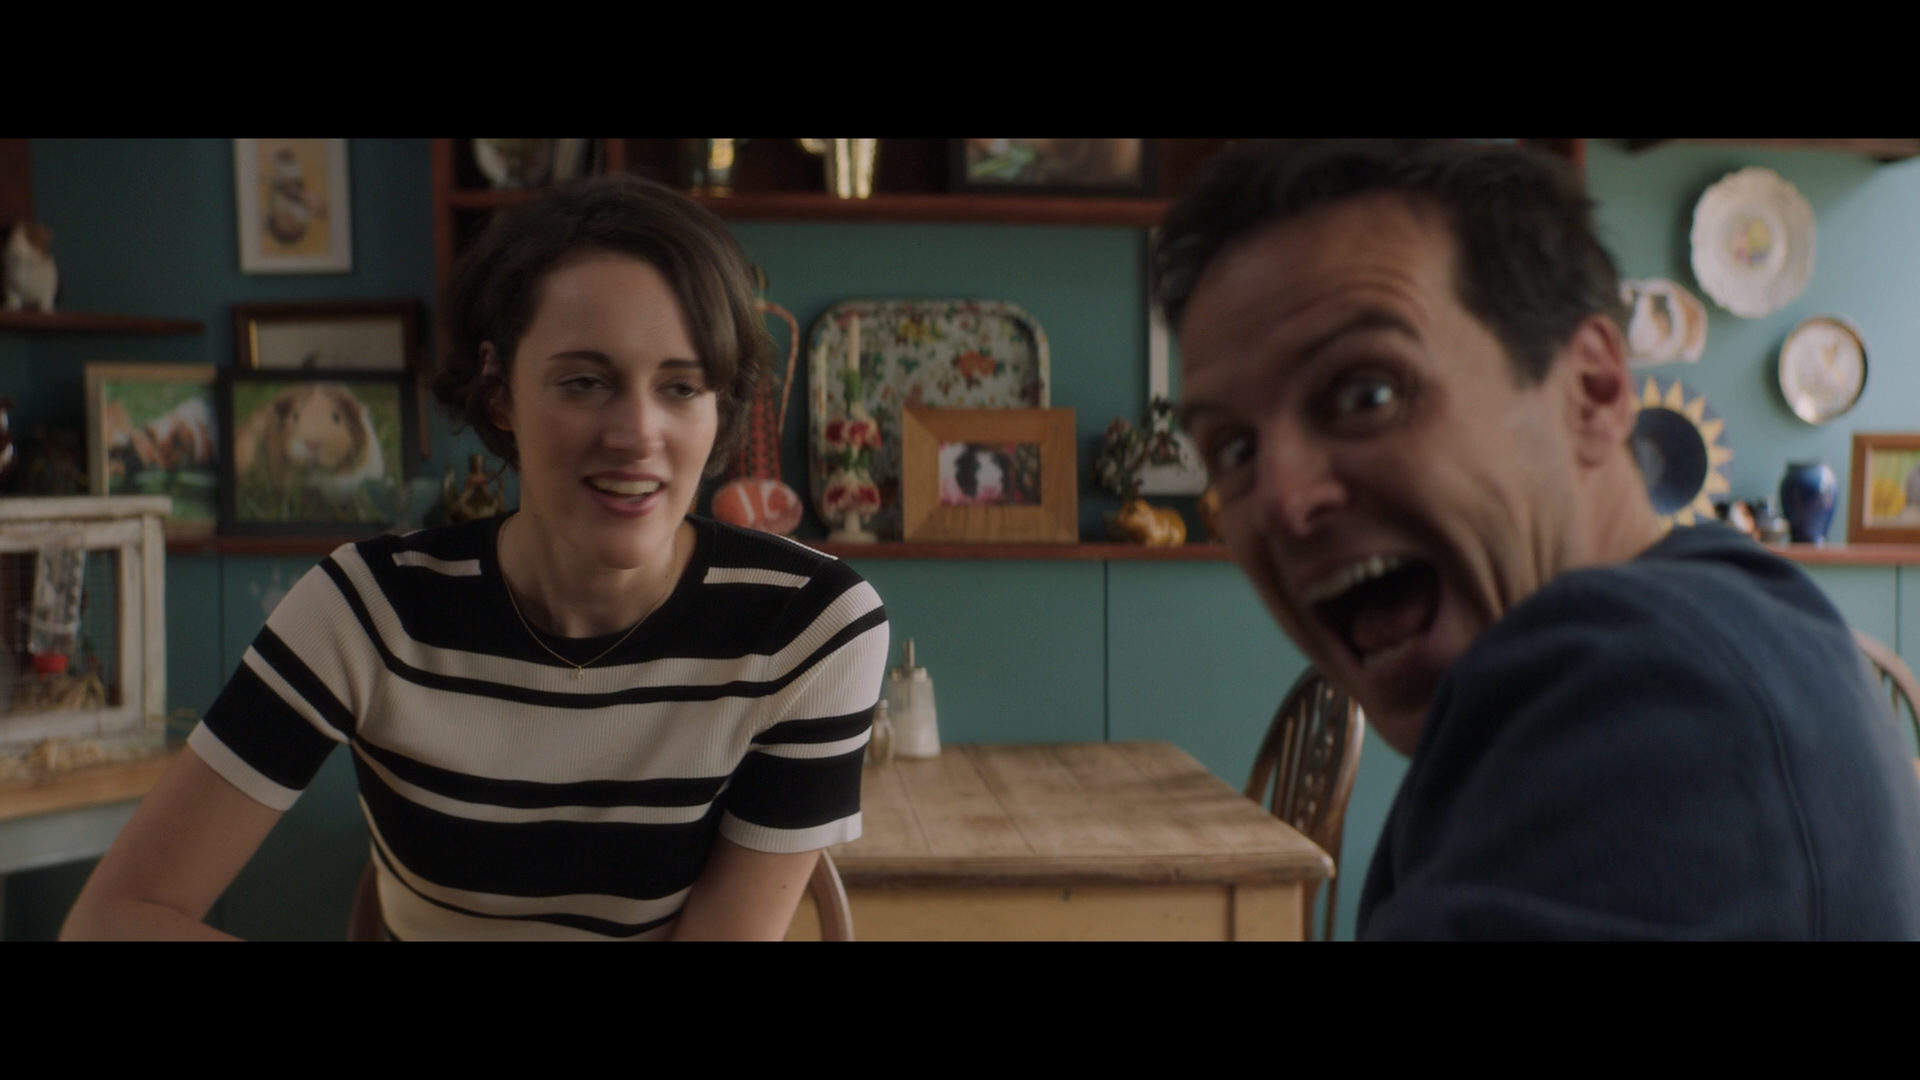 TV Moments, In Fleabag, when the Priest senses Fleabag breaking the fourth wall and decides to do it as well.